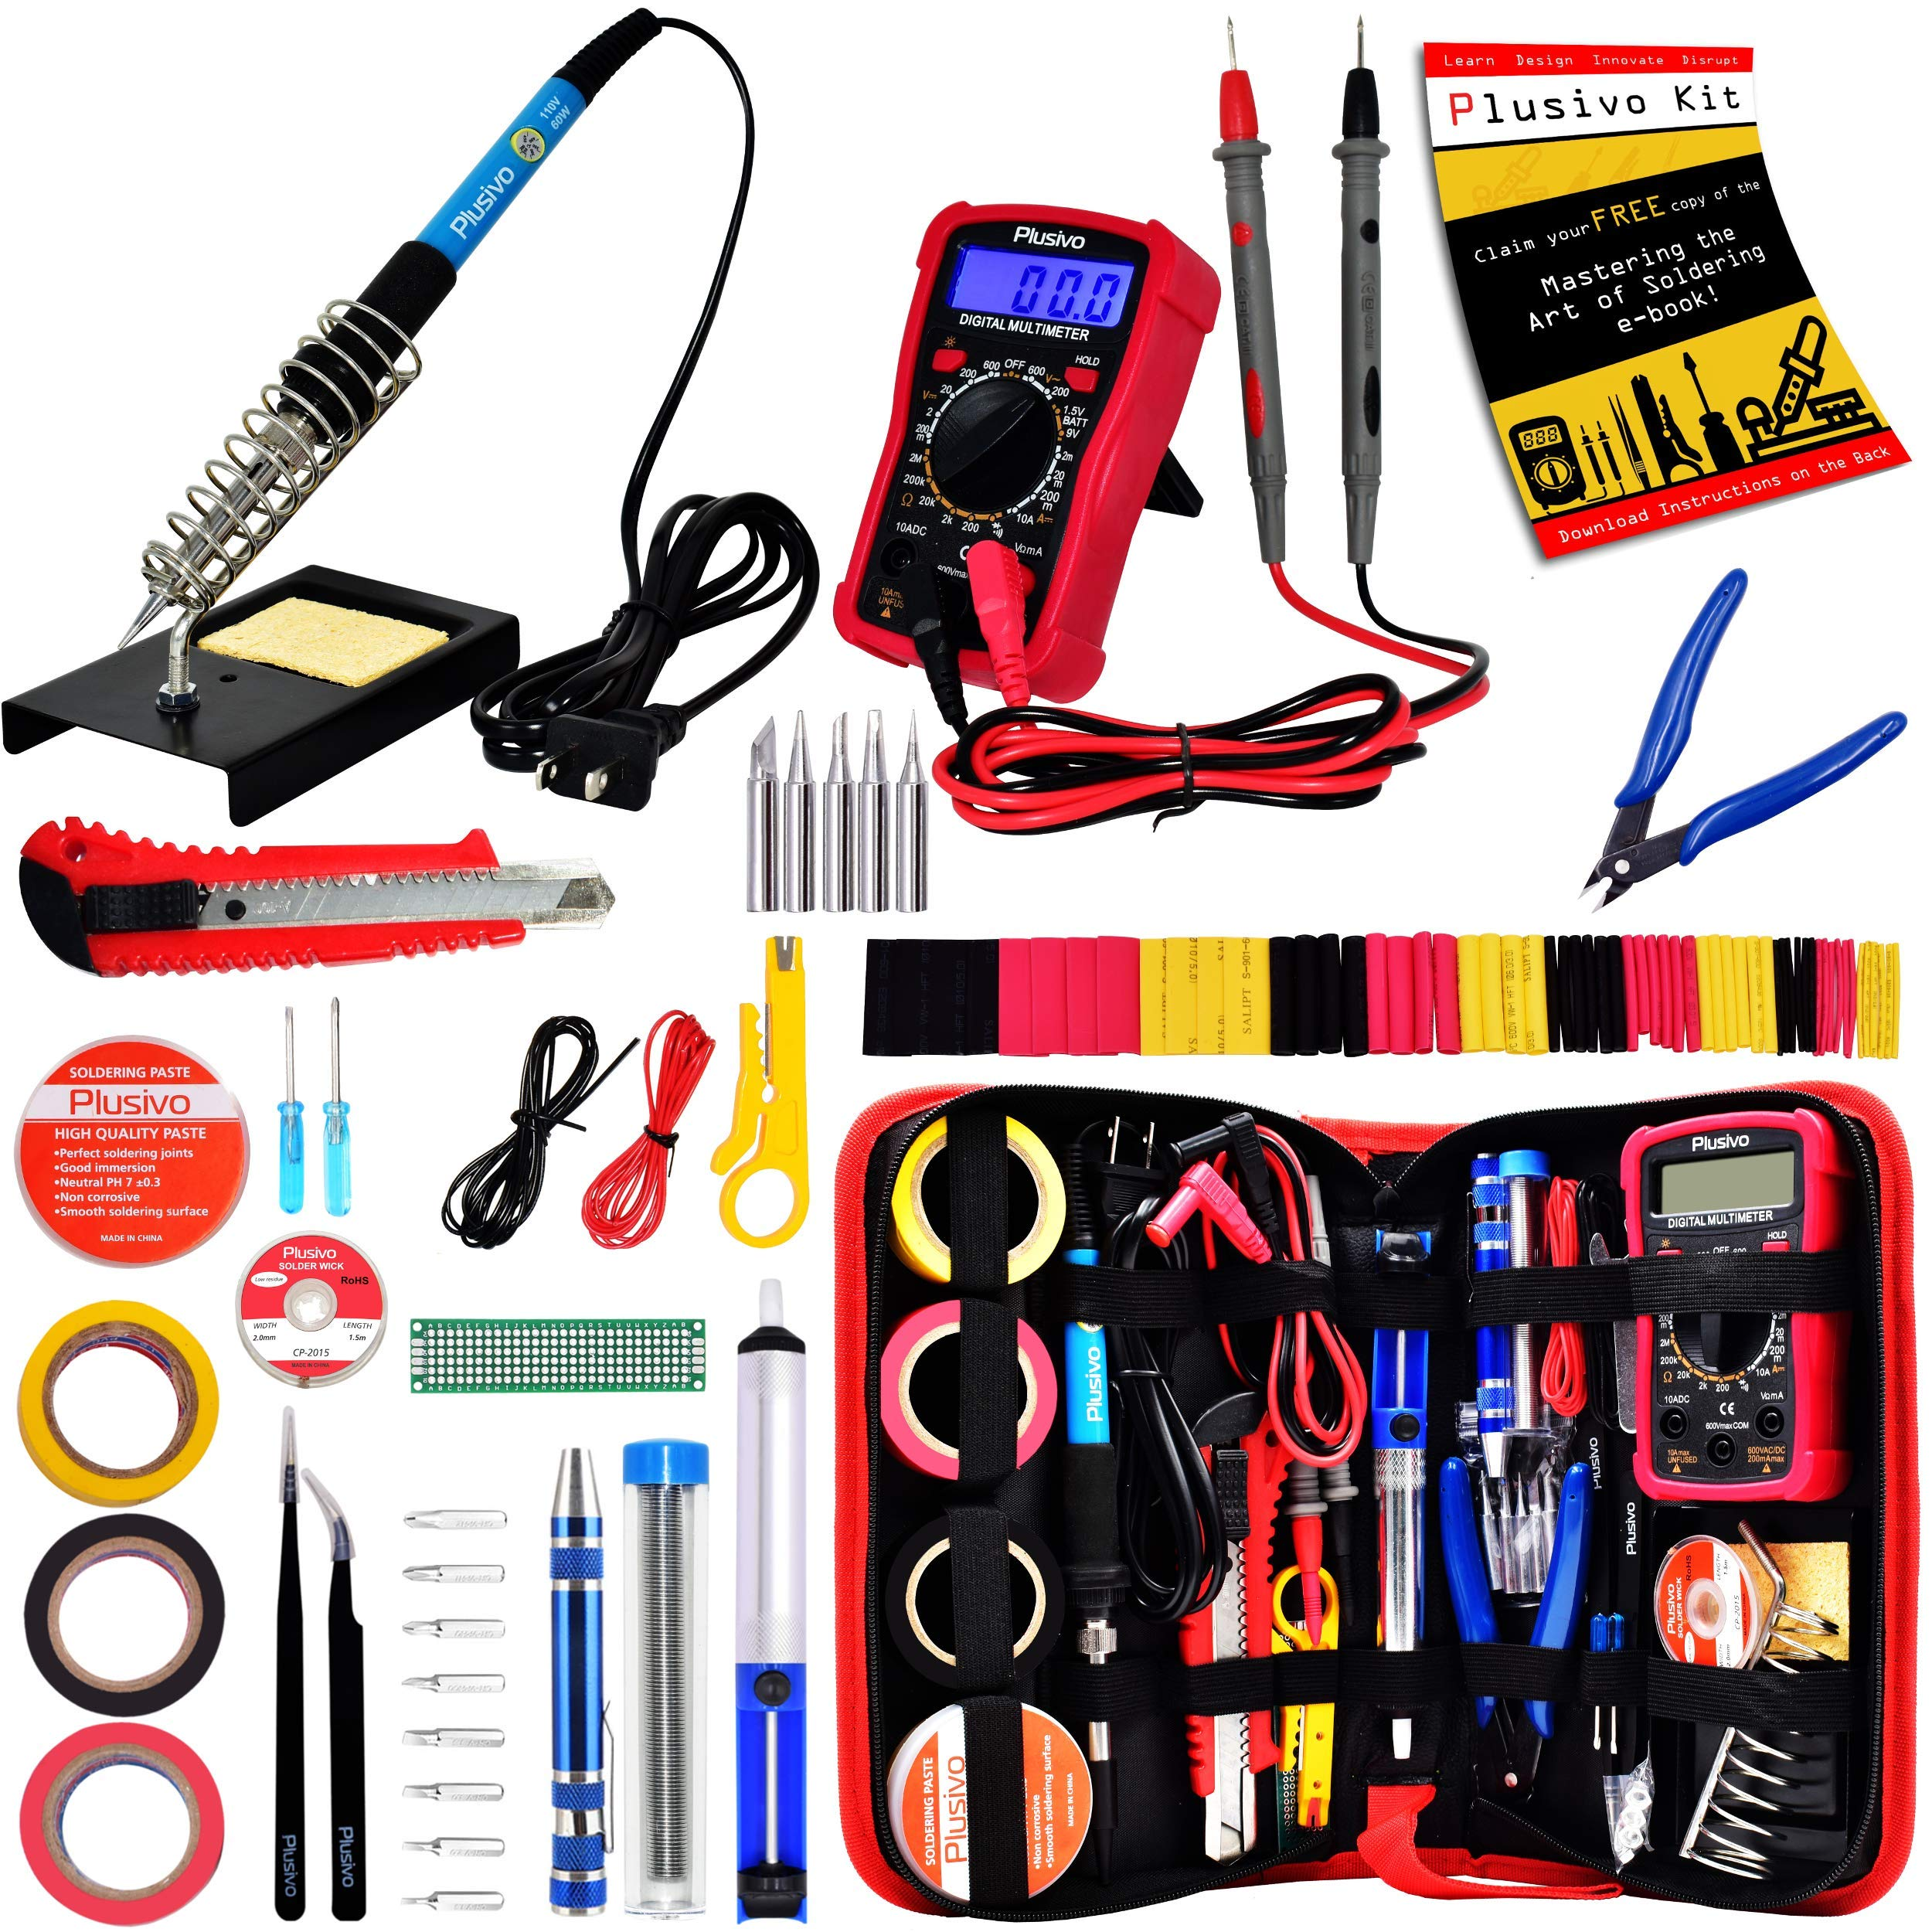 Soldering Iron Kit - Soldering Iron 60 W Adjustable Temperature, Digital Multimeter, Wire Cutter, Stand,Soldering Iron Tip Set, Desoldering Pump, Solder Wick, Tweezers, Rosin, Wire - [110 V, US Plug] by Plusivo